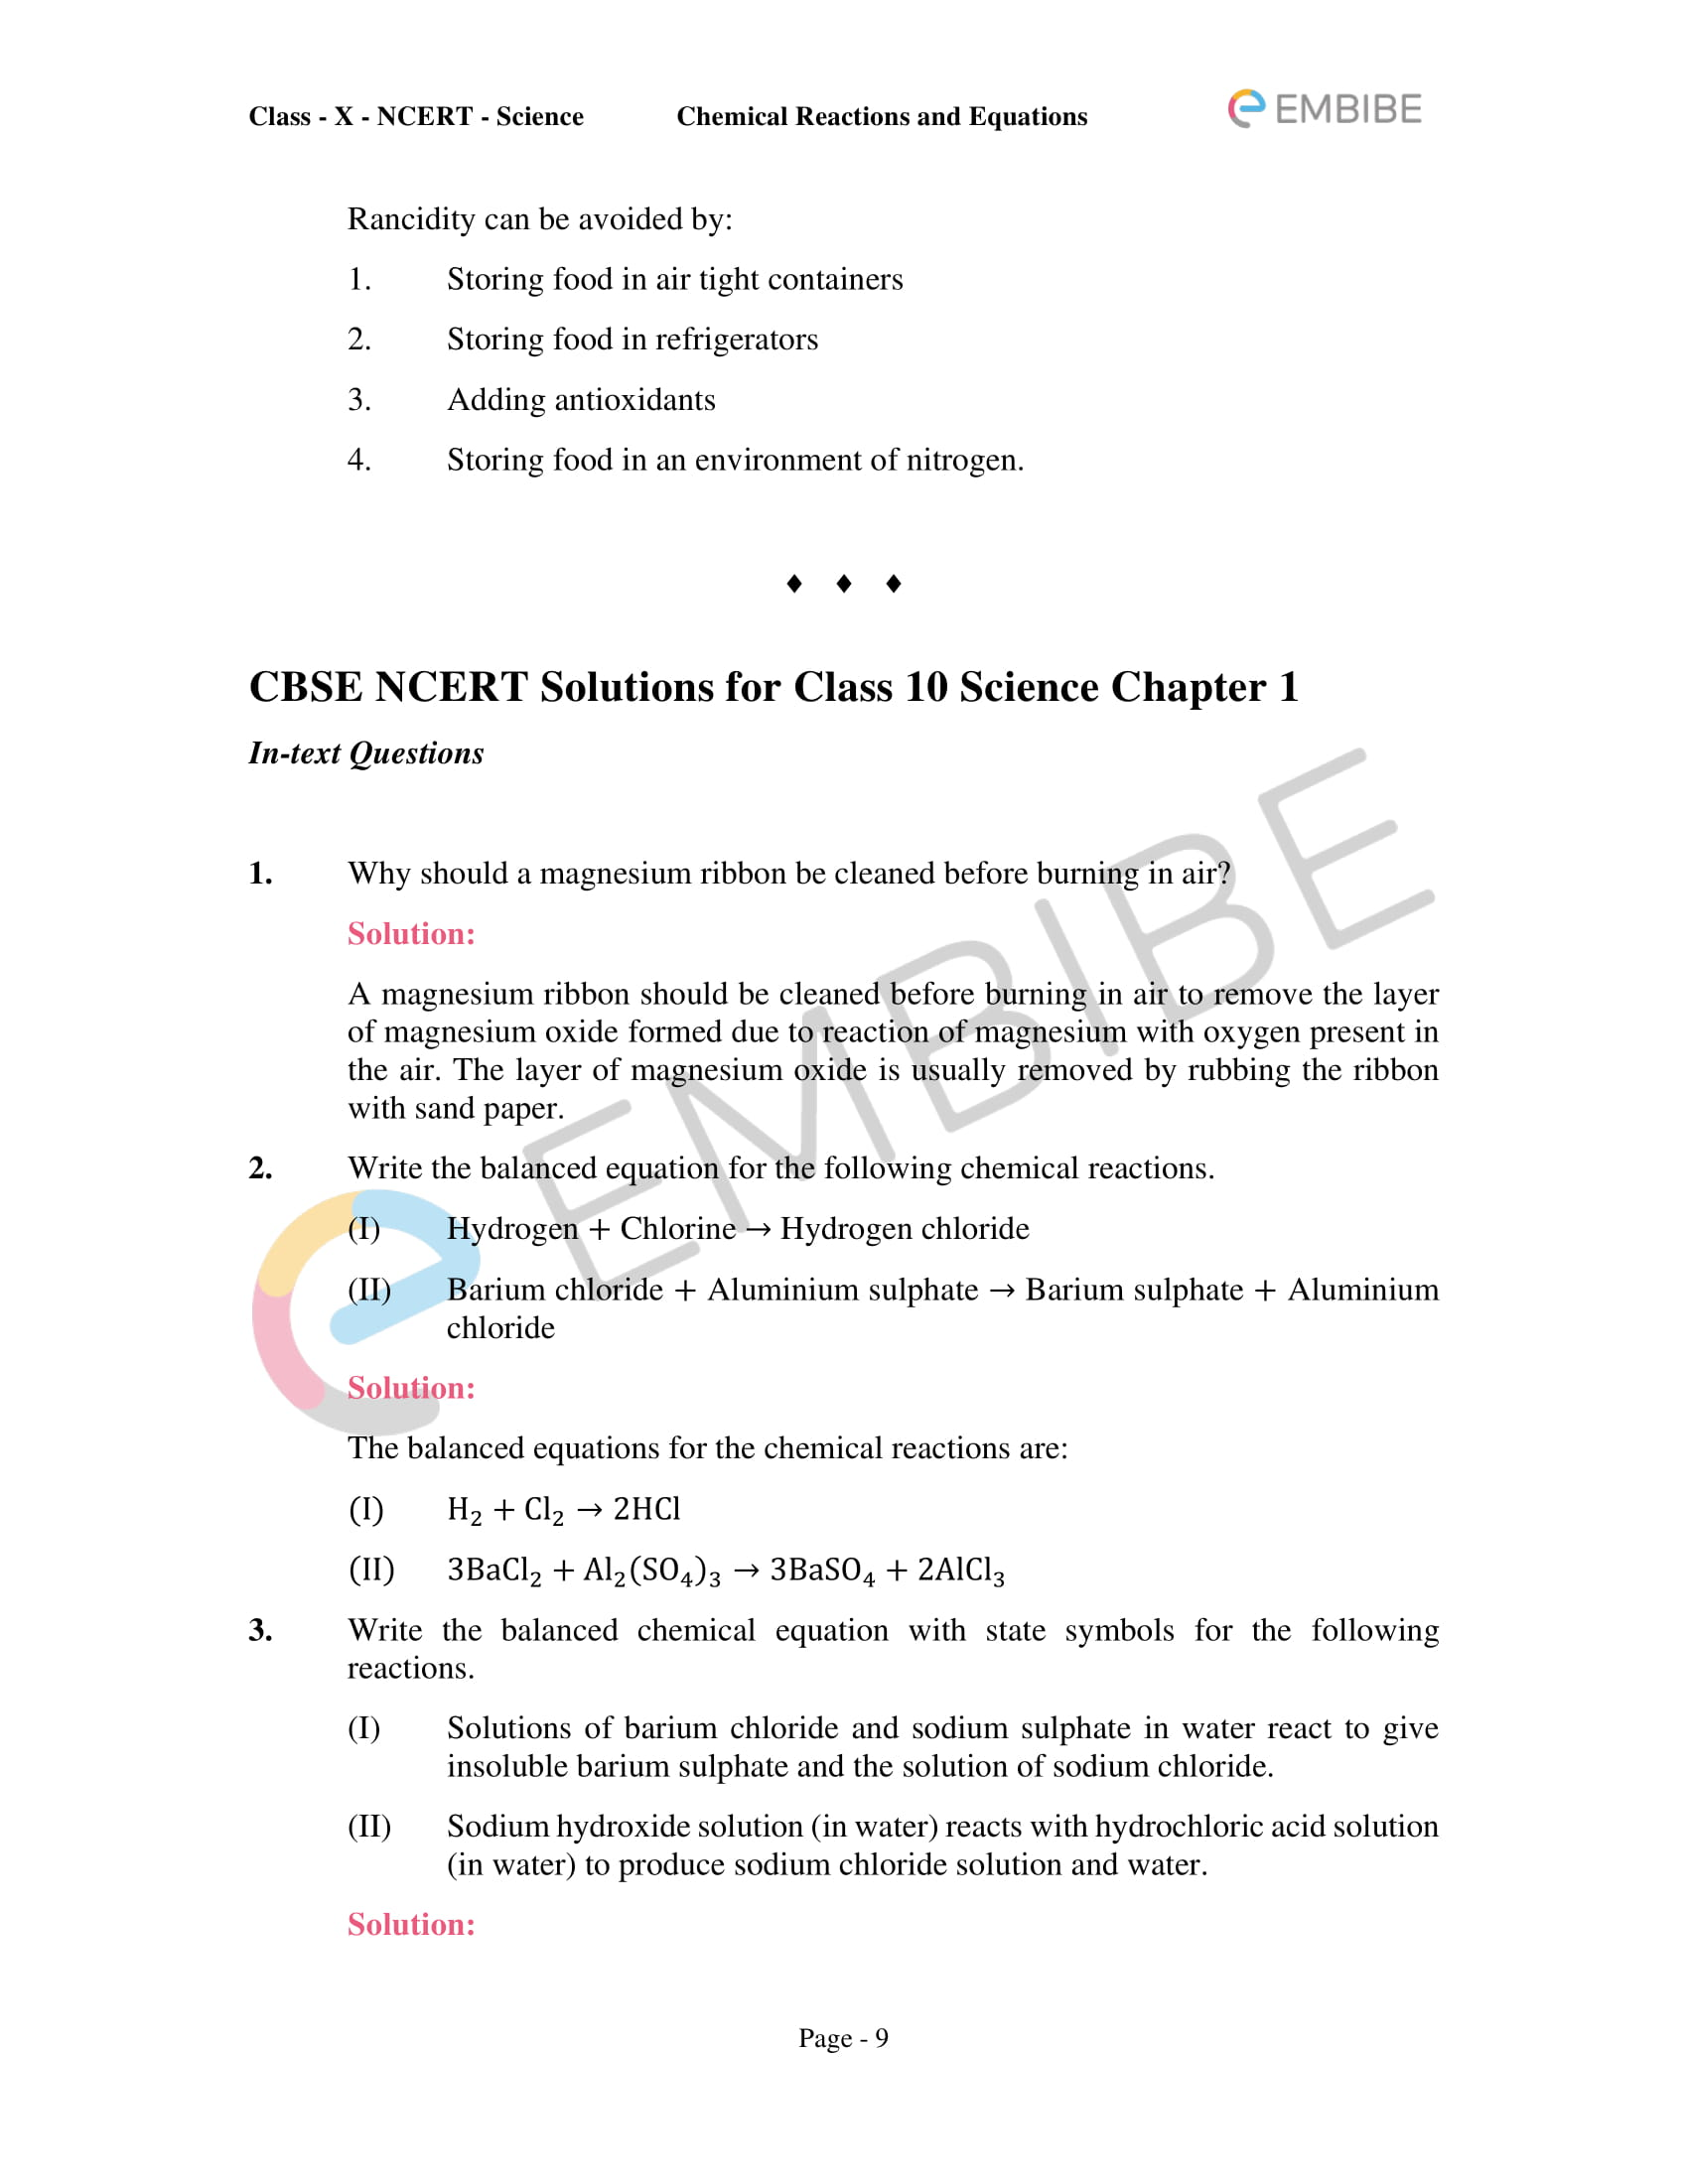 CBSE NCERT Solutions for Class 10 Science Chapter 1: Chemical Reactions And Equations-9